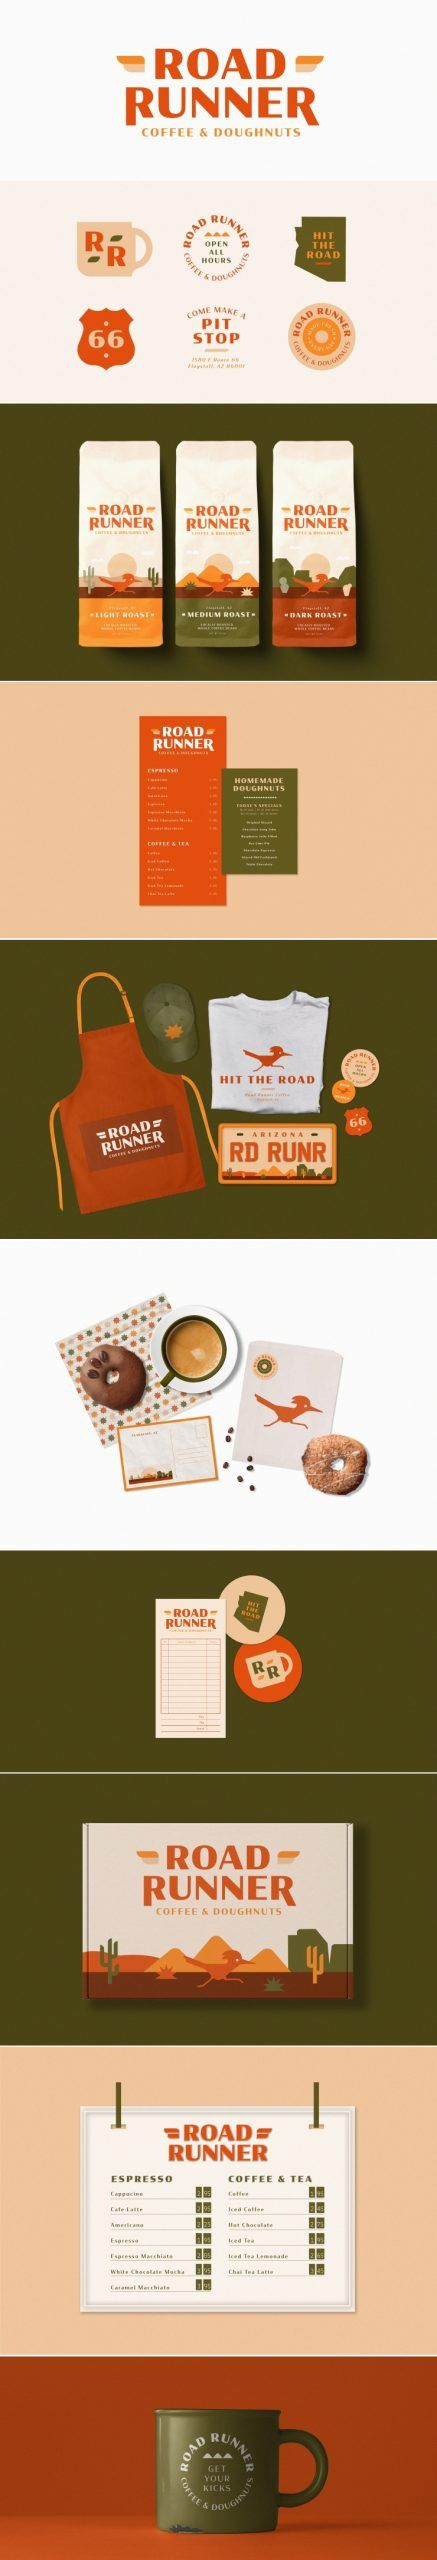 Road Runner coffee and doughnuts brand design and packaging by Hannah Wexler